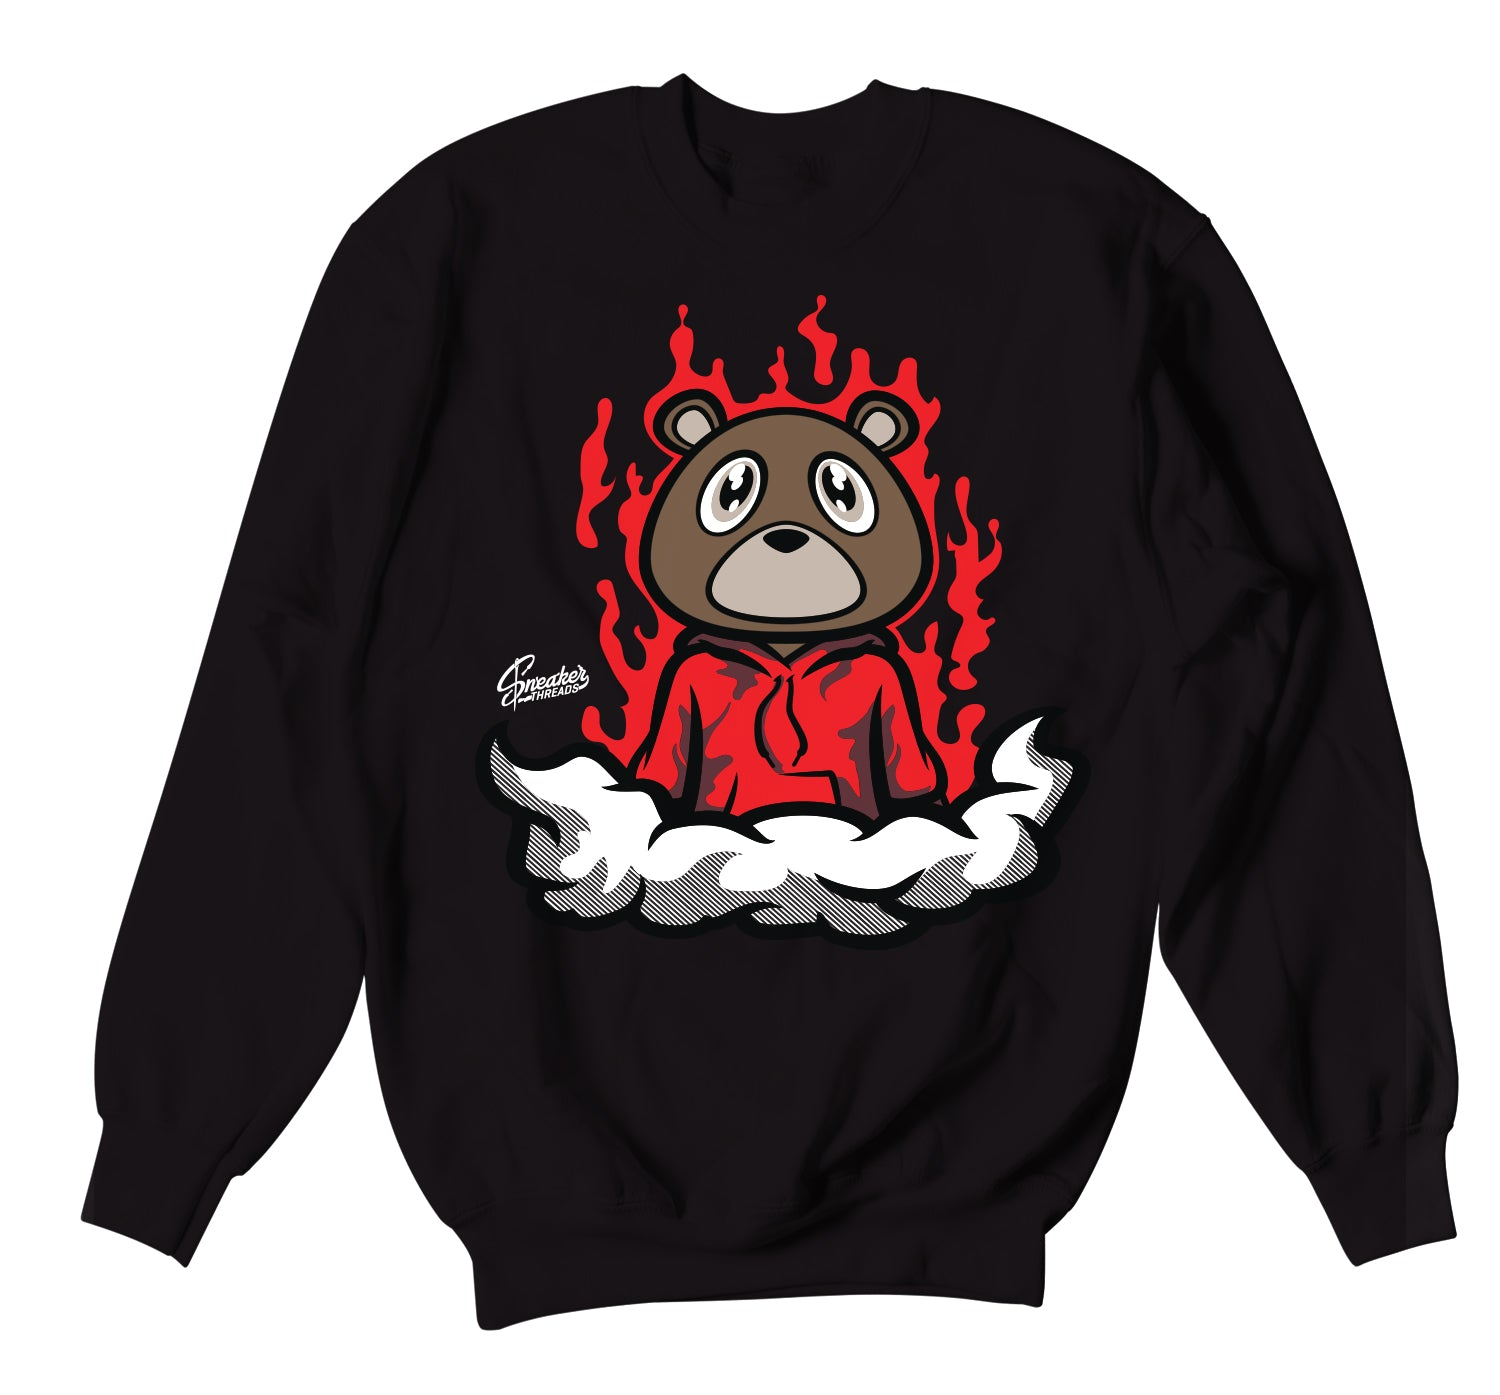 Yeezy 350 Bred Fresh Bear Sweater